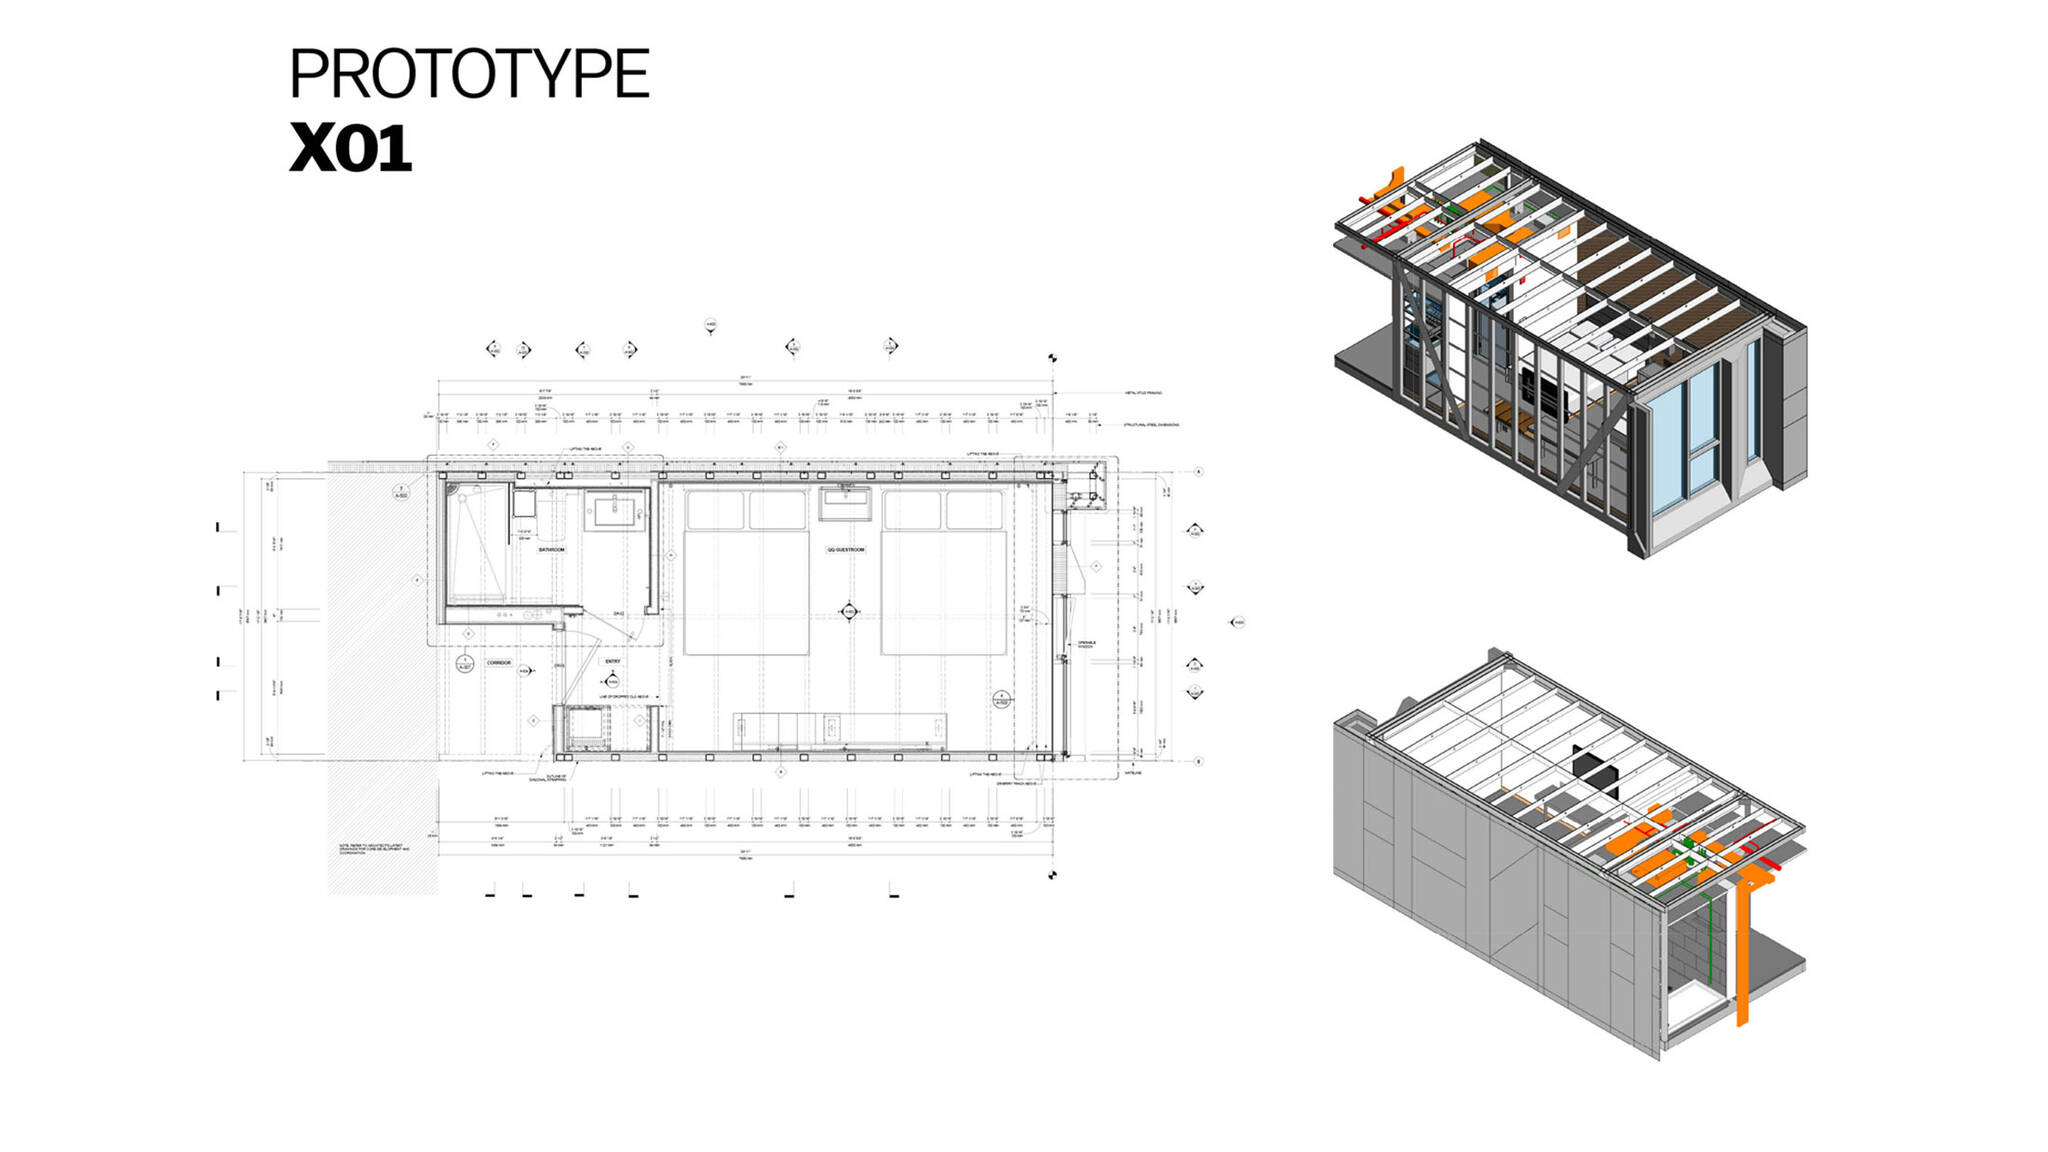 Mechanical plan of the X01 prototype of the Modular AC Hotel project located at 842 Sixth Avenue in NoMad, New York City designed by the architecture studio Danny Forster & Architecture